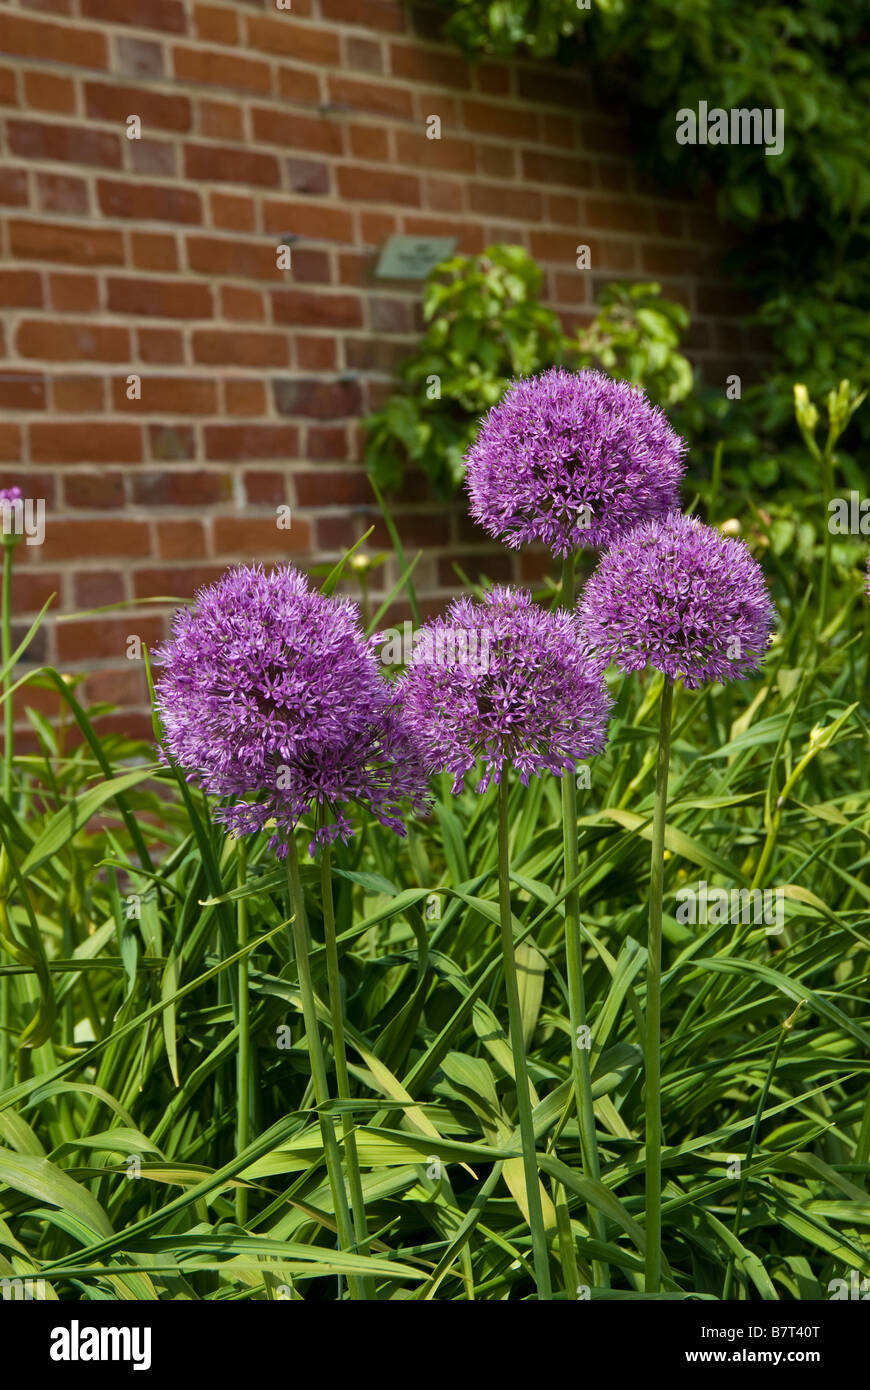 Allium flowers against a red brick wall. - Stock Image